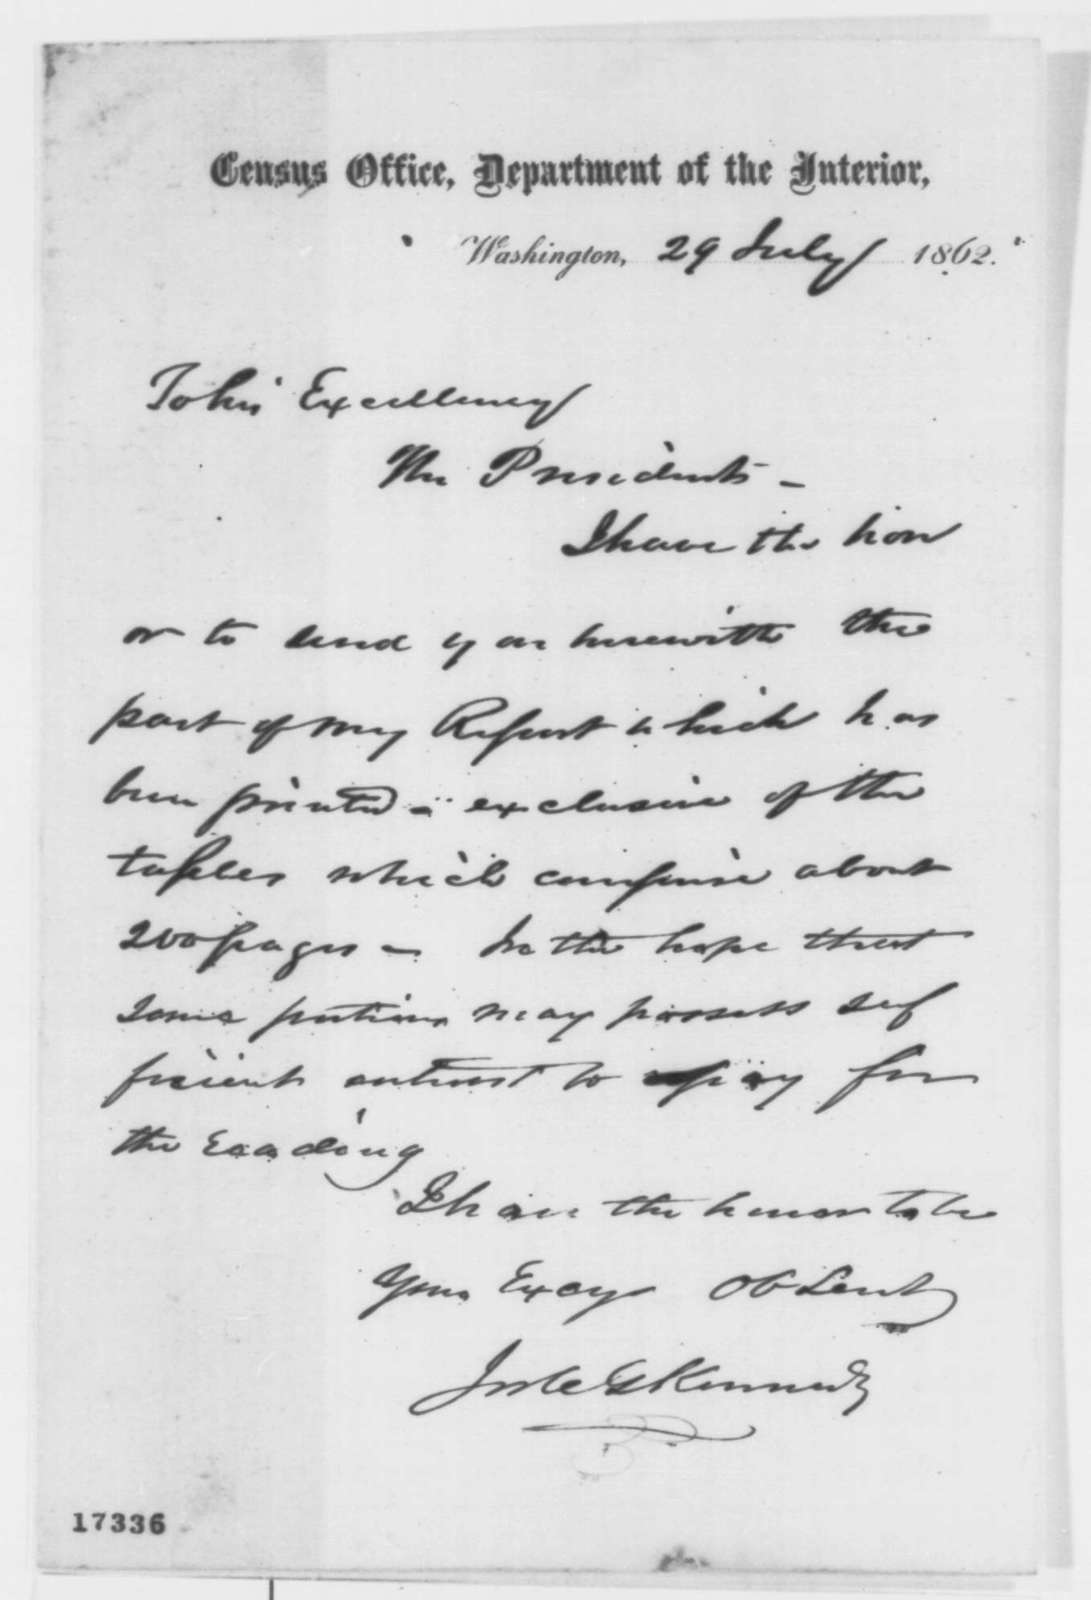 Joseph C. G. Kennedy to Abraham Lincoln, Tuesday, July 29, 1862  (Sends report)